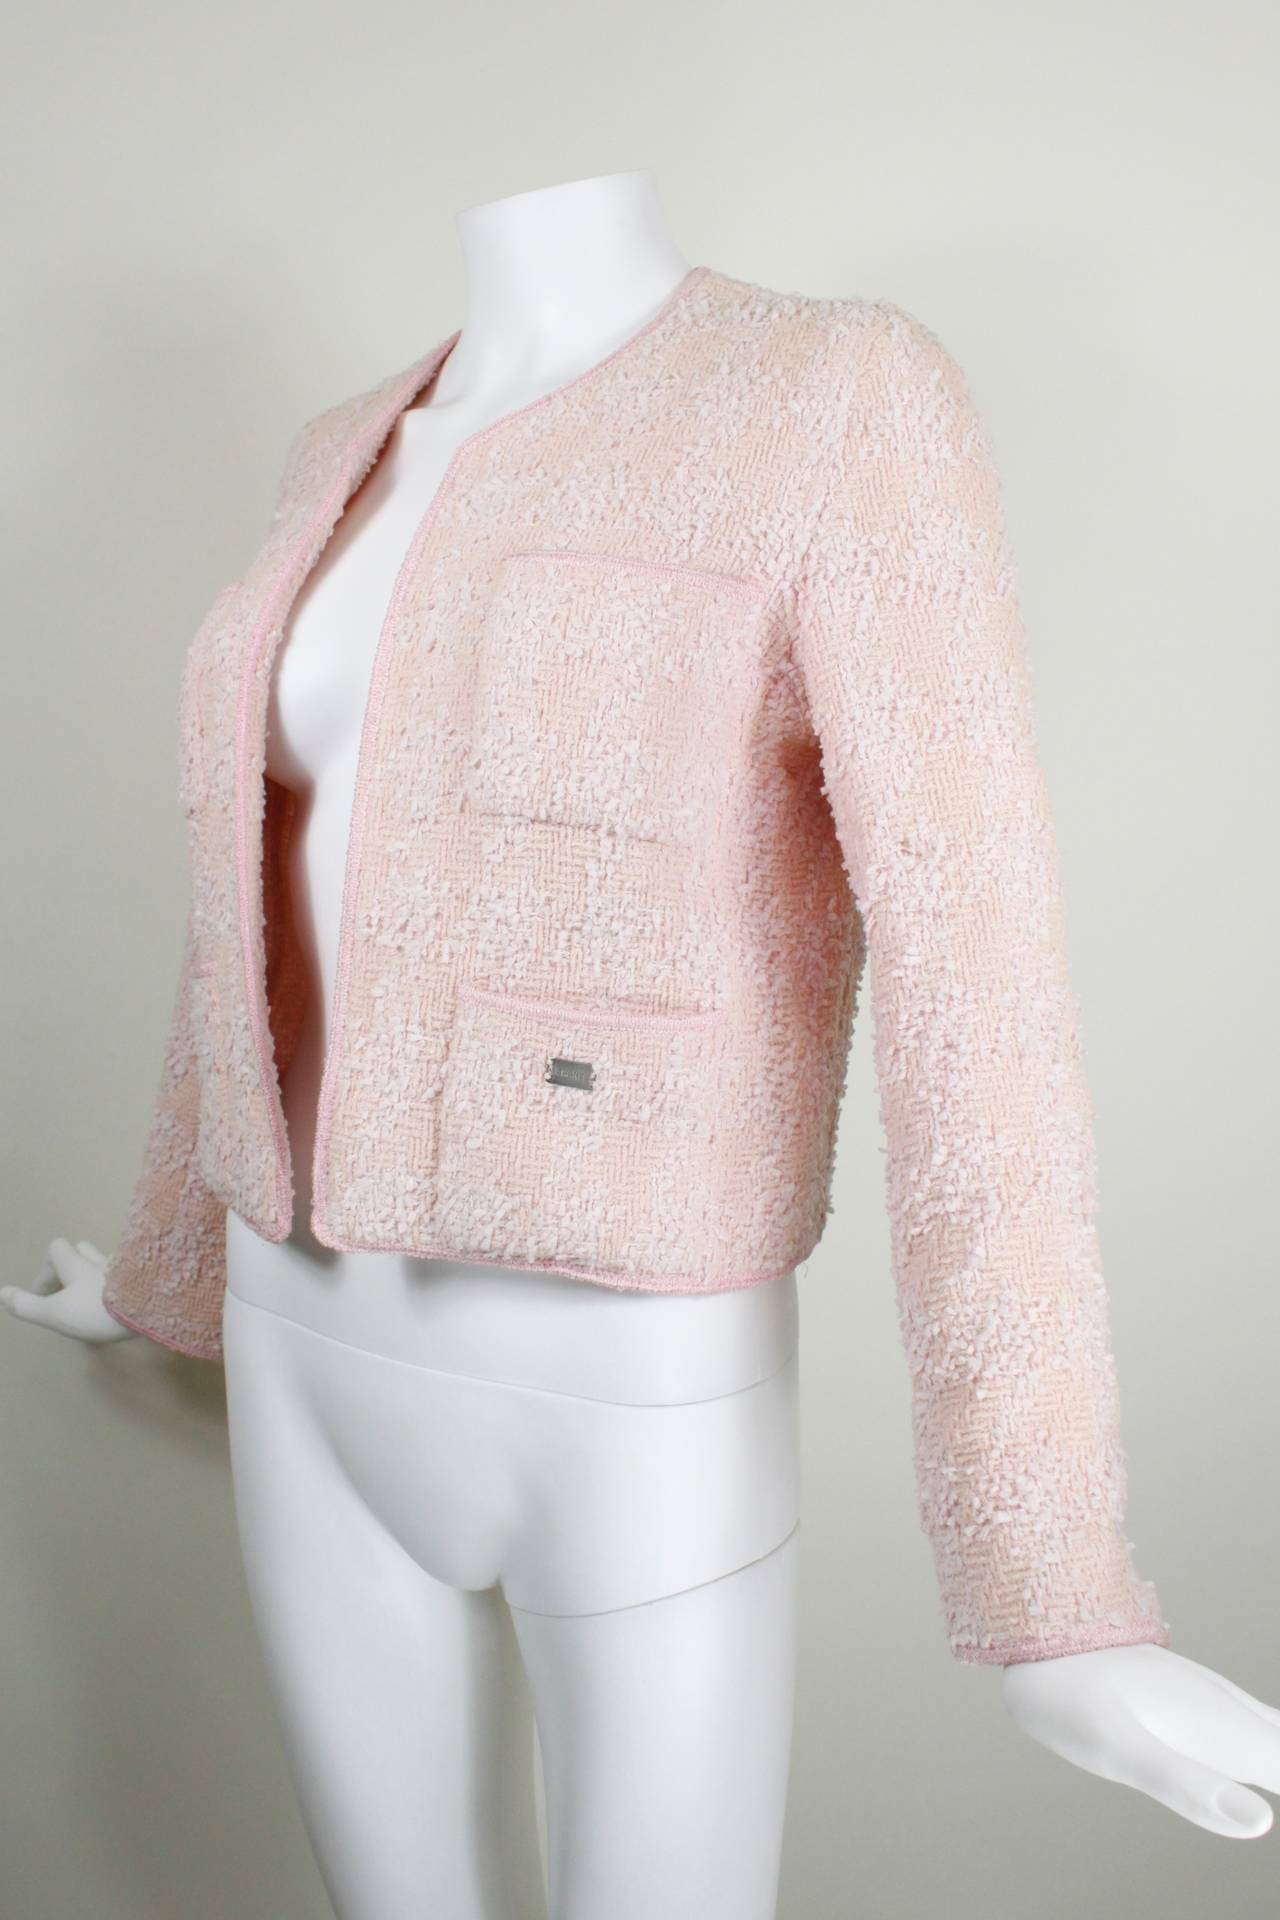 Chanel Blush Pink Houndstooth Bouclé Jacket at 1stdibs